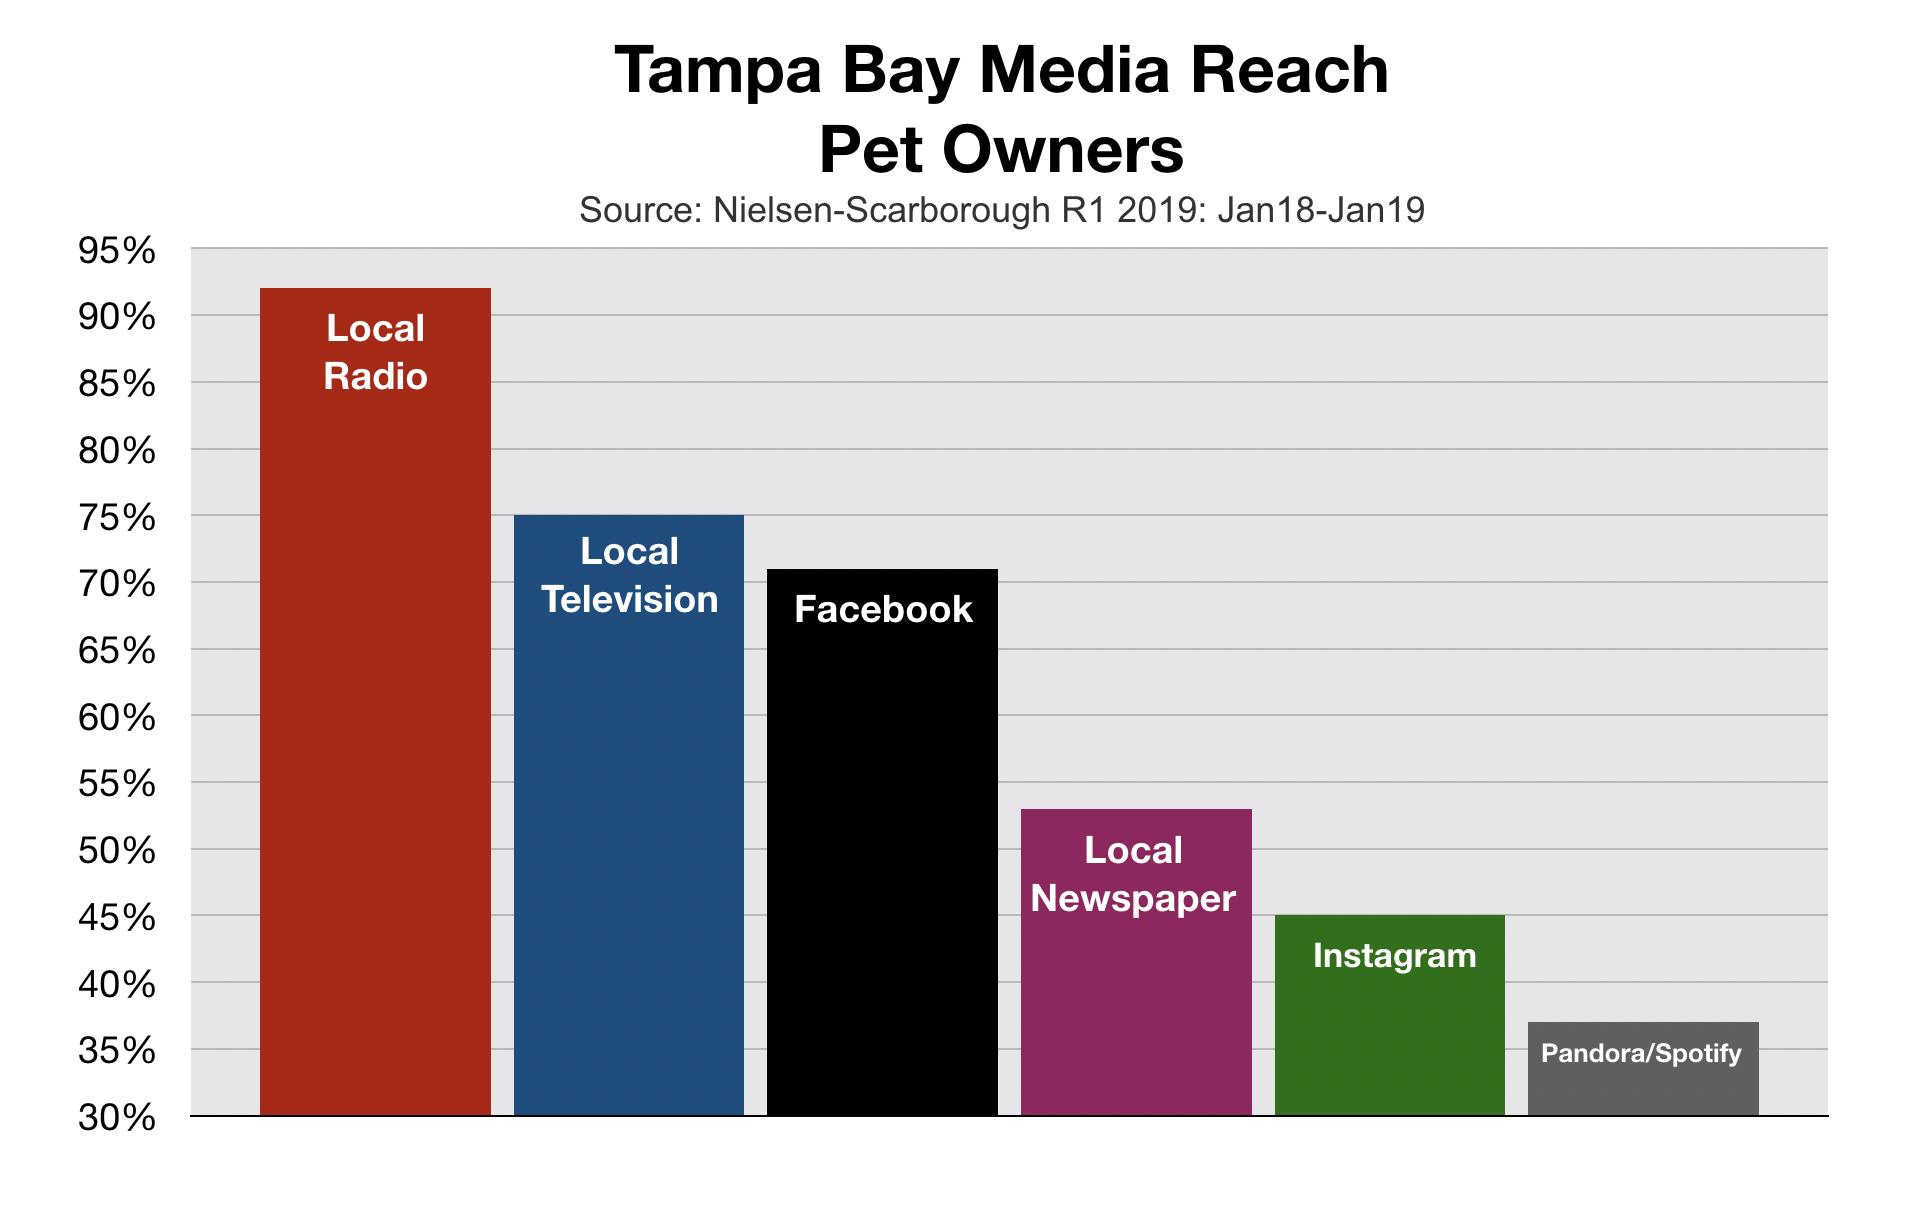 Tampa Bay Advertising Media Reach Pet Owners